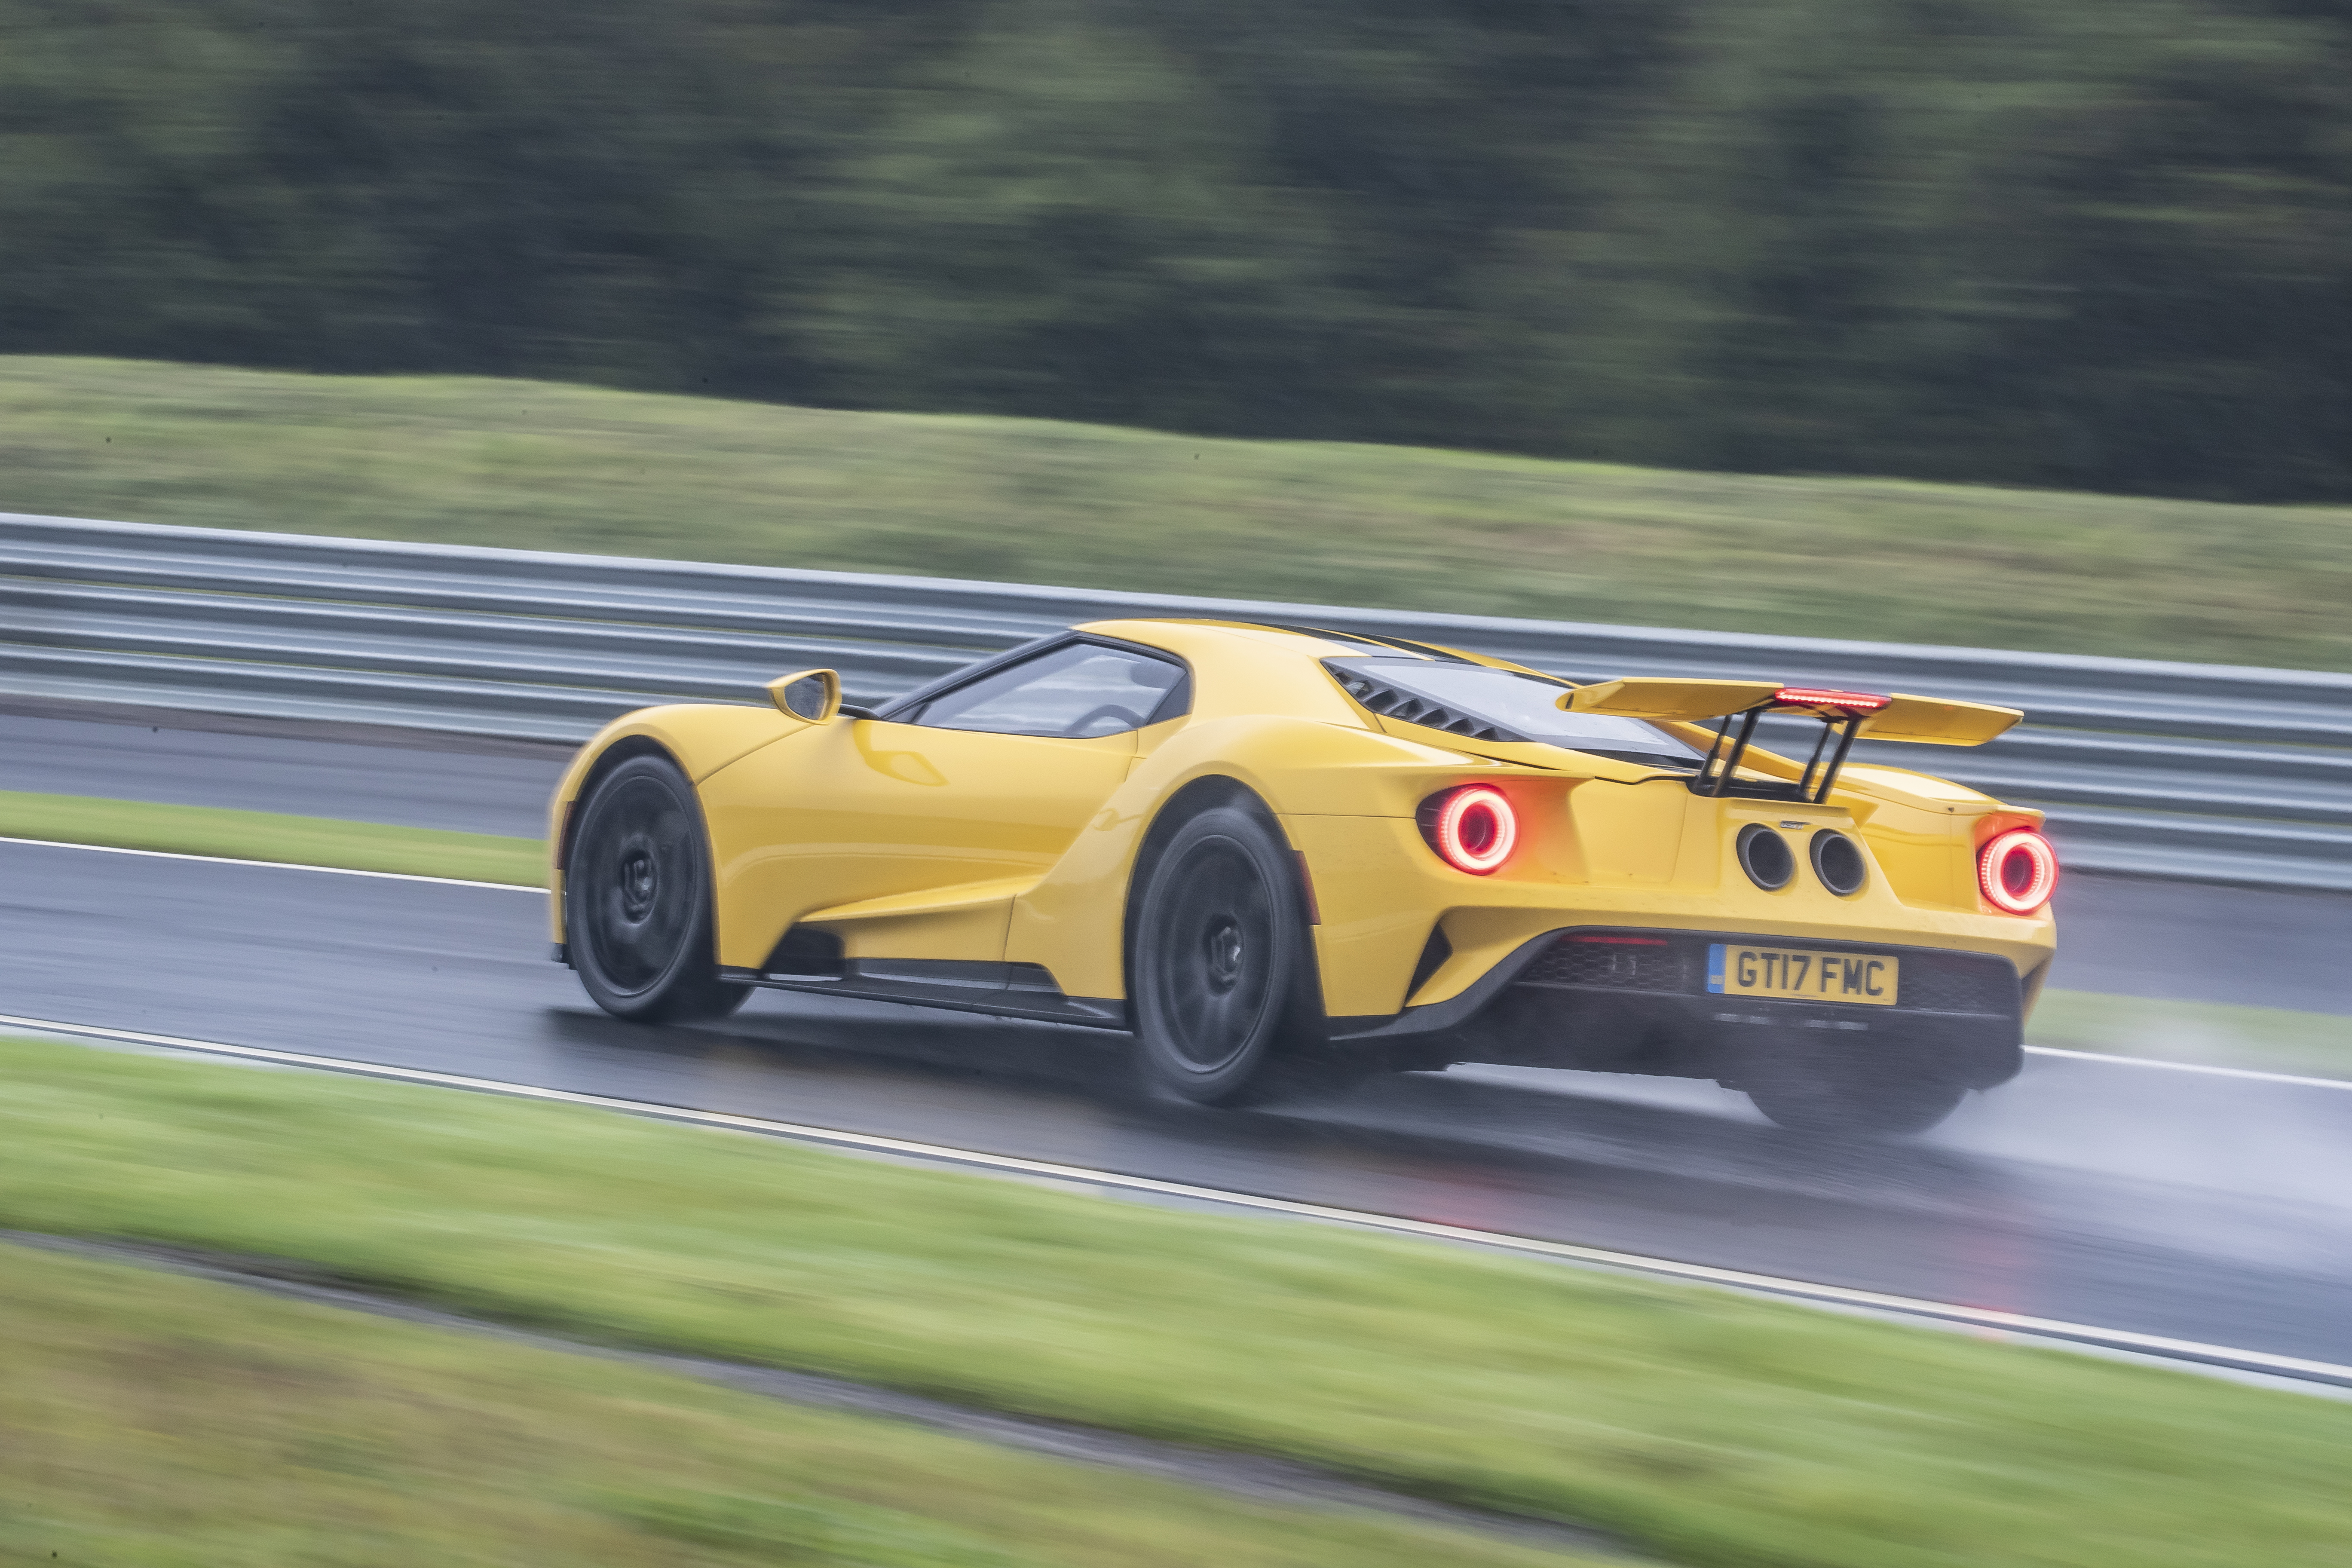 Despite tricky conditions, the GT remained manageable